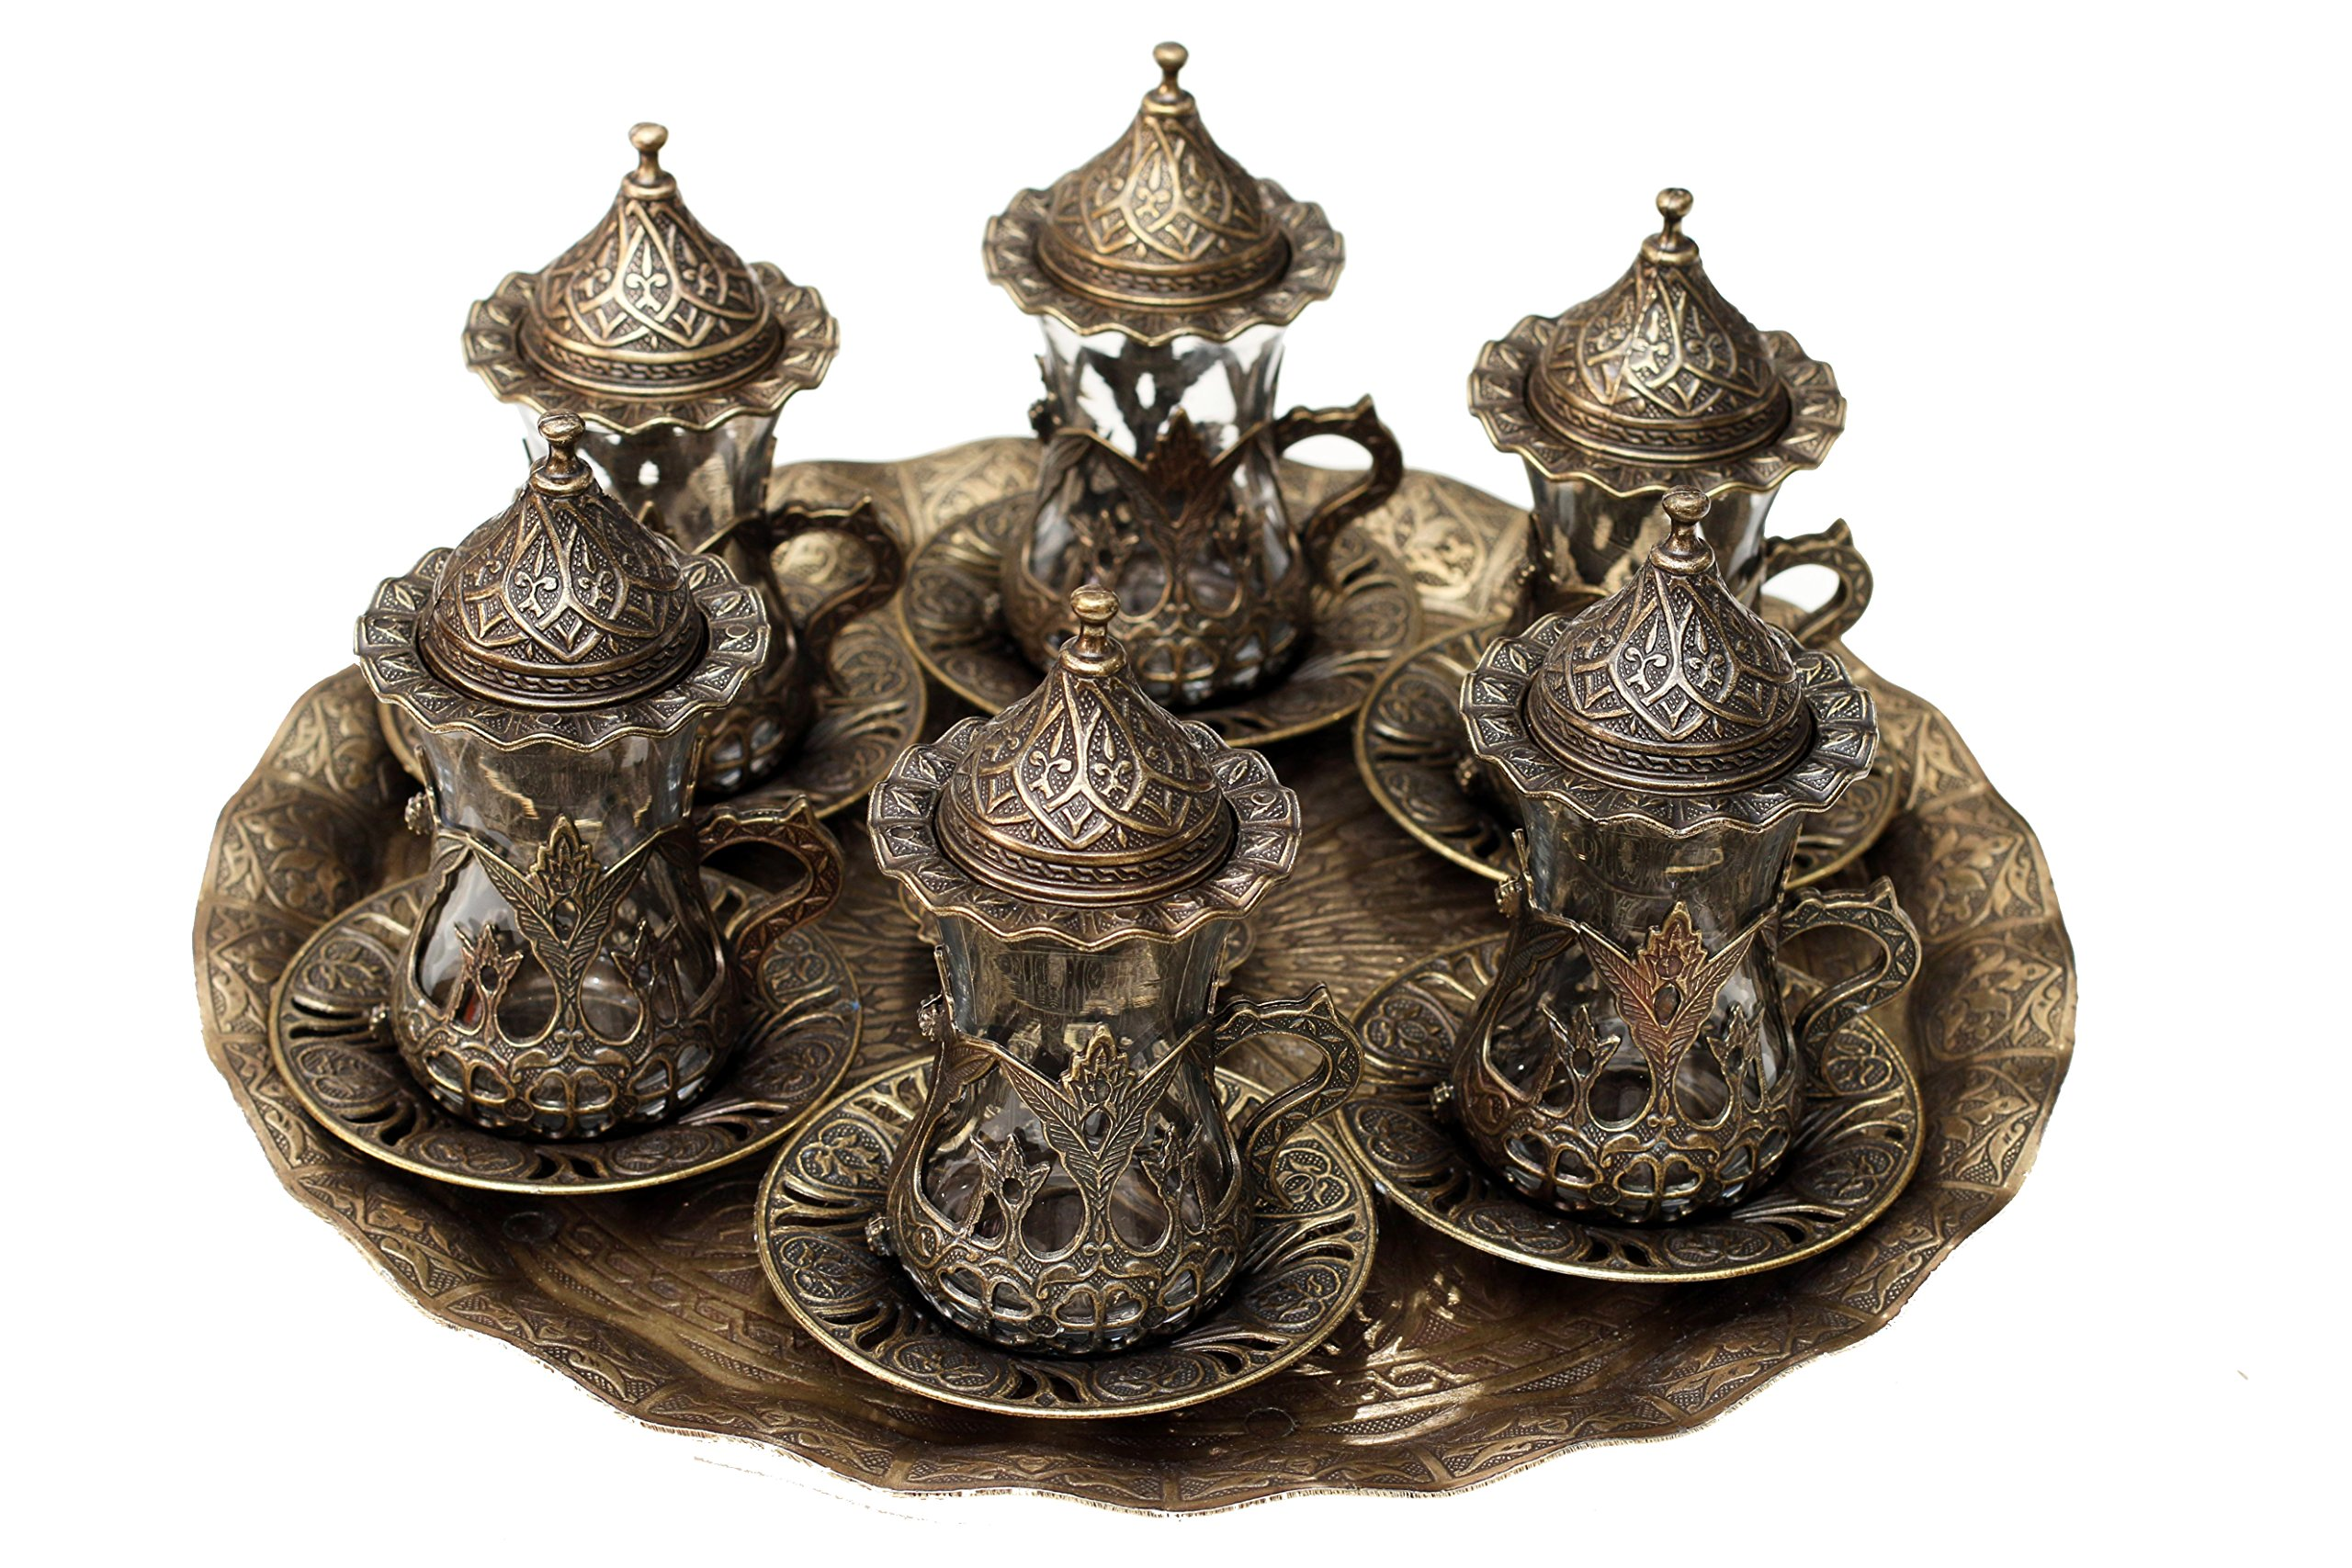 Turkish Style Tea Glasses with Holders Lids, Saucers and Tray 6 Pcs Set (brass)